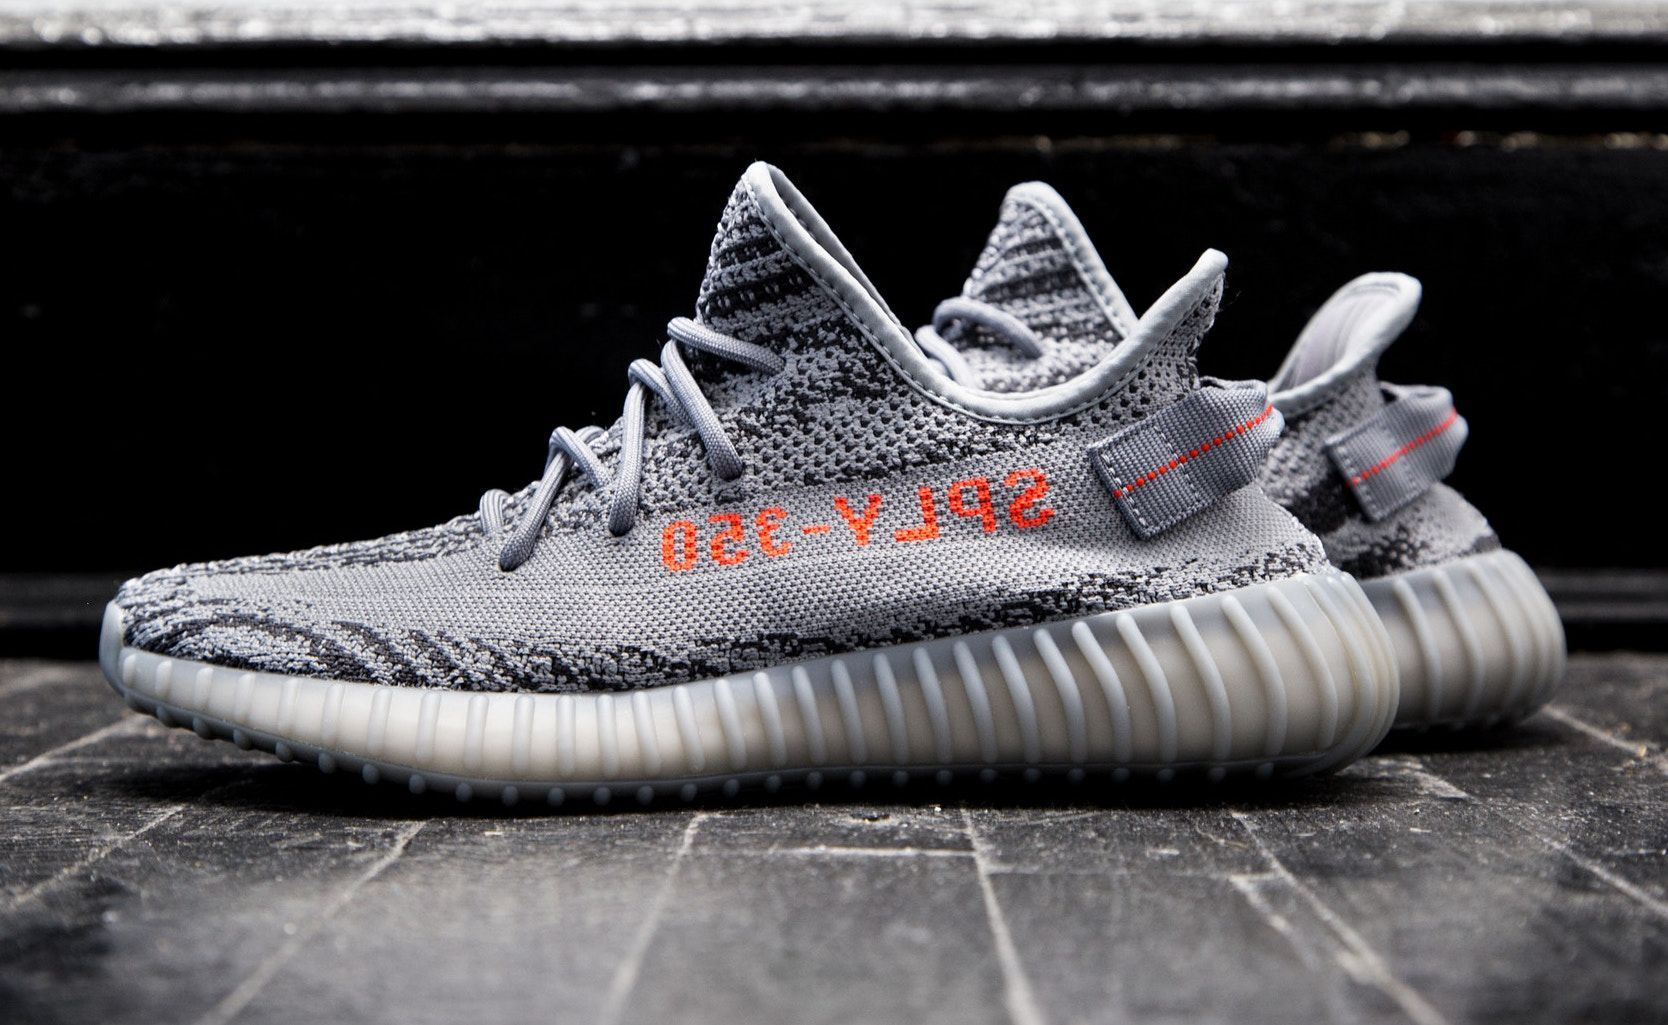 Where To Buy The adidas Yeezy Boost 350 V2 Beluga 2.0 (Store Listing) 2ed62d4cf